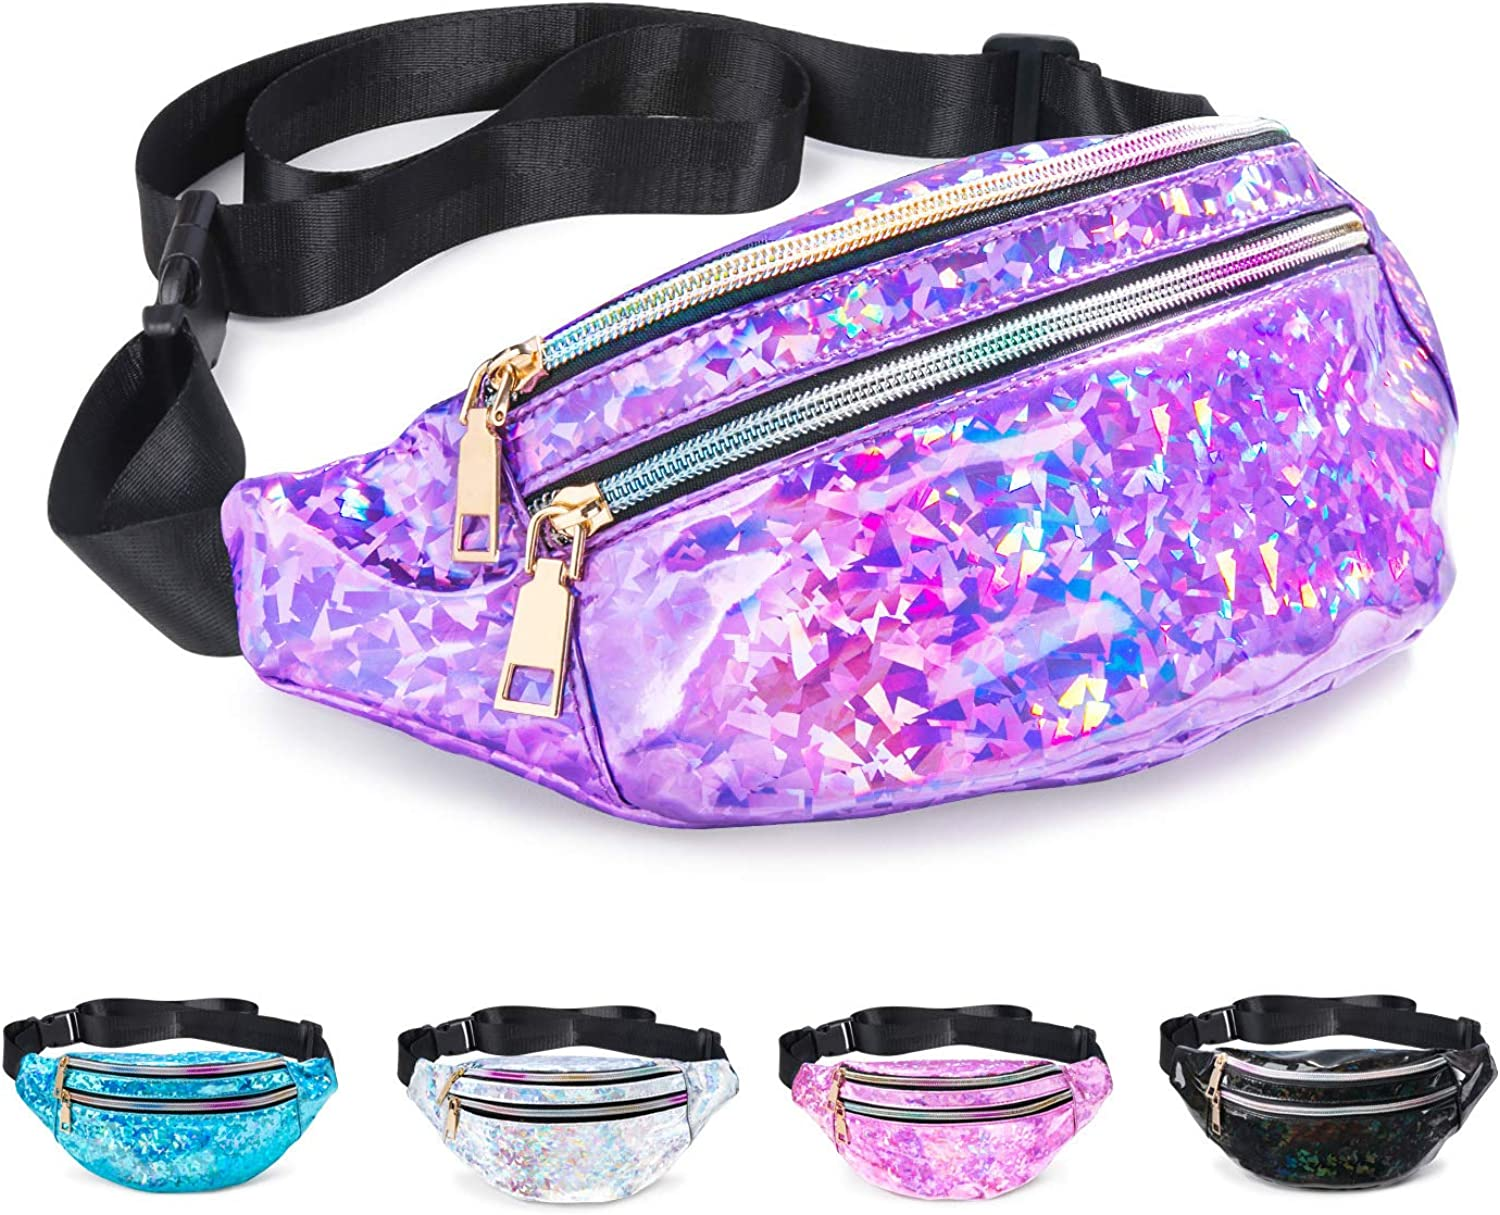 Extra Small fancy fanny pack XS Purple ultrasuede tapestry pocket belt with mermaid chain